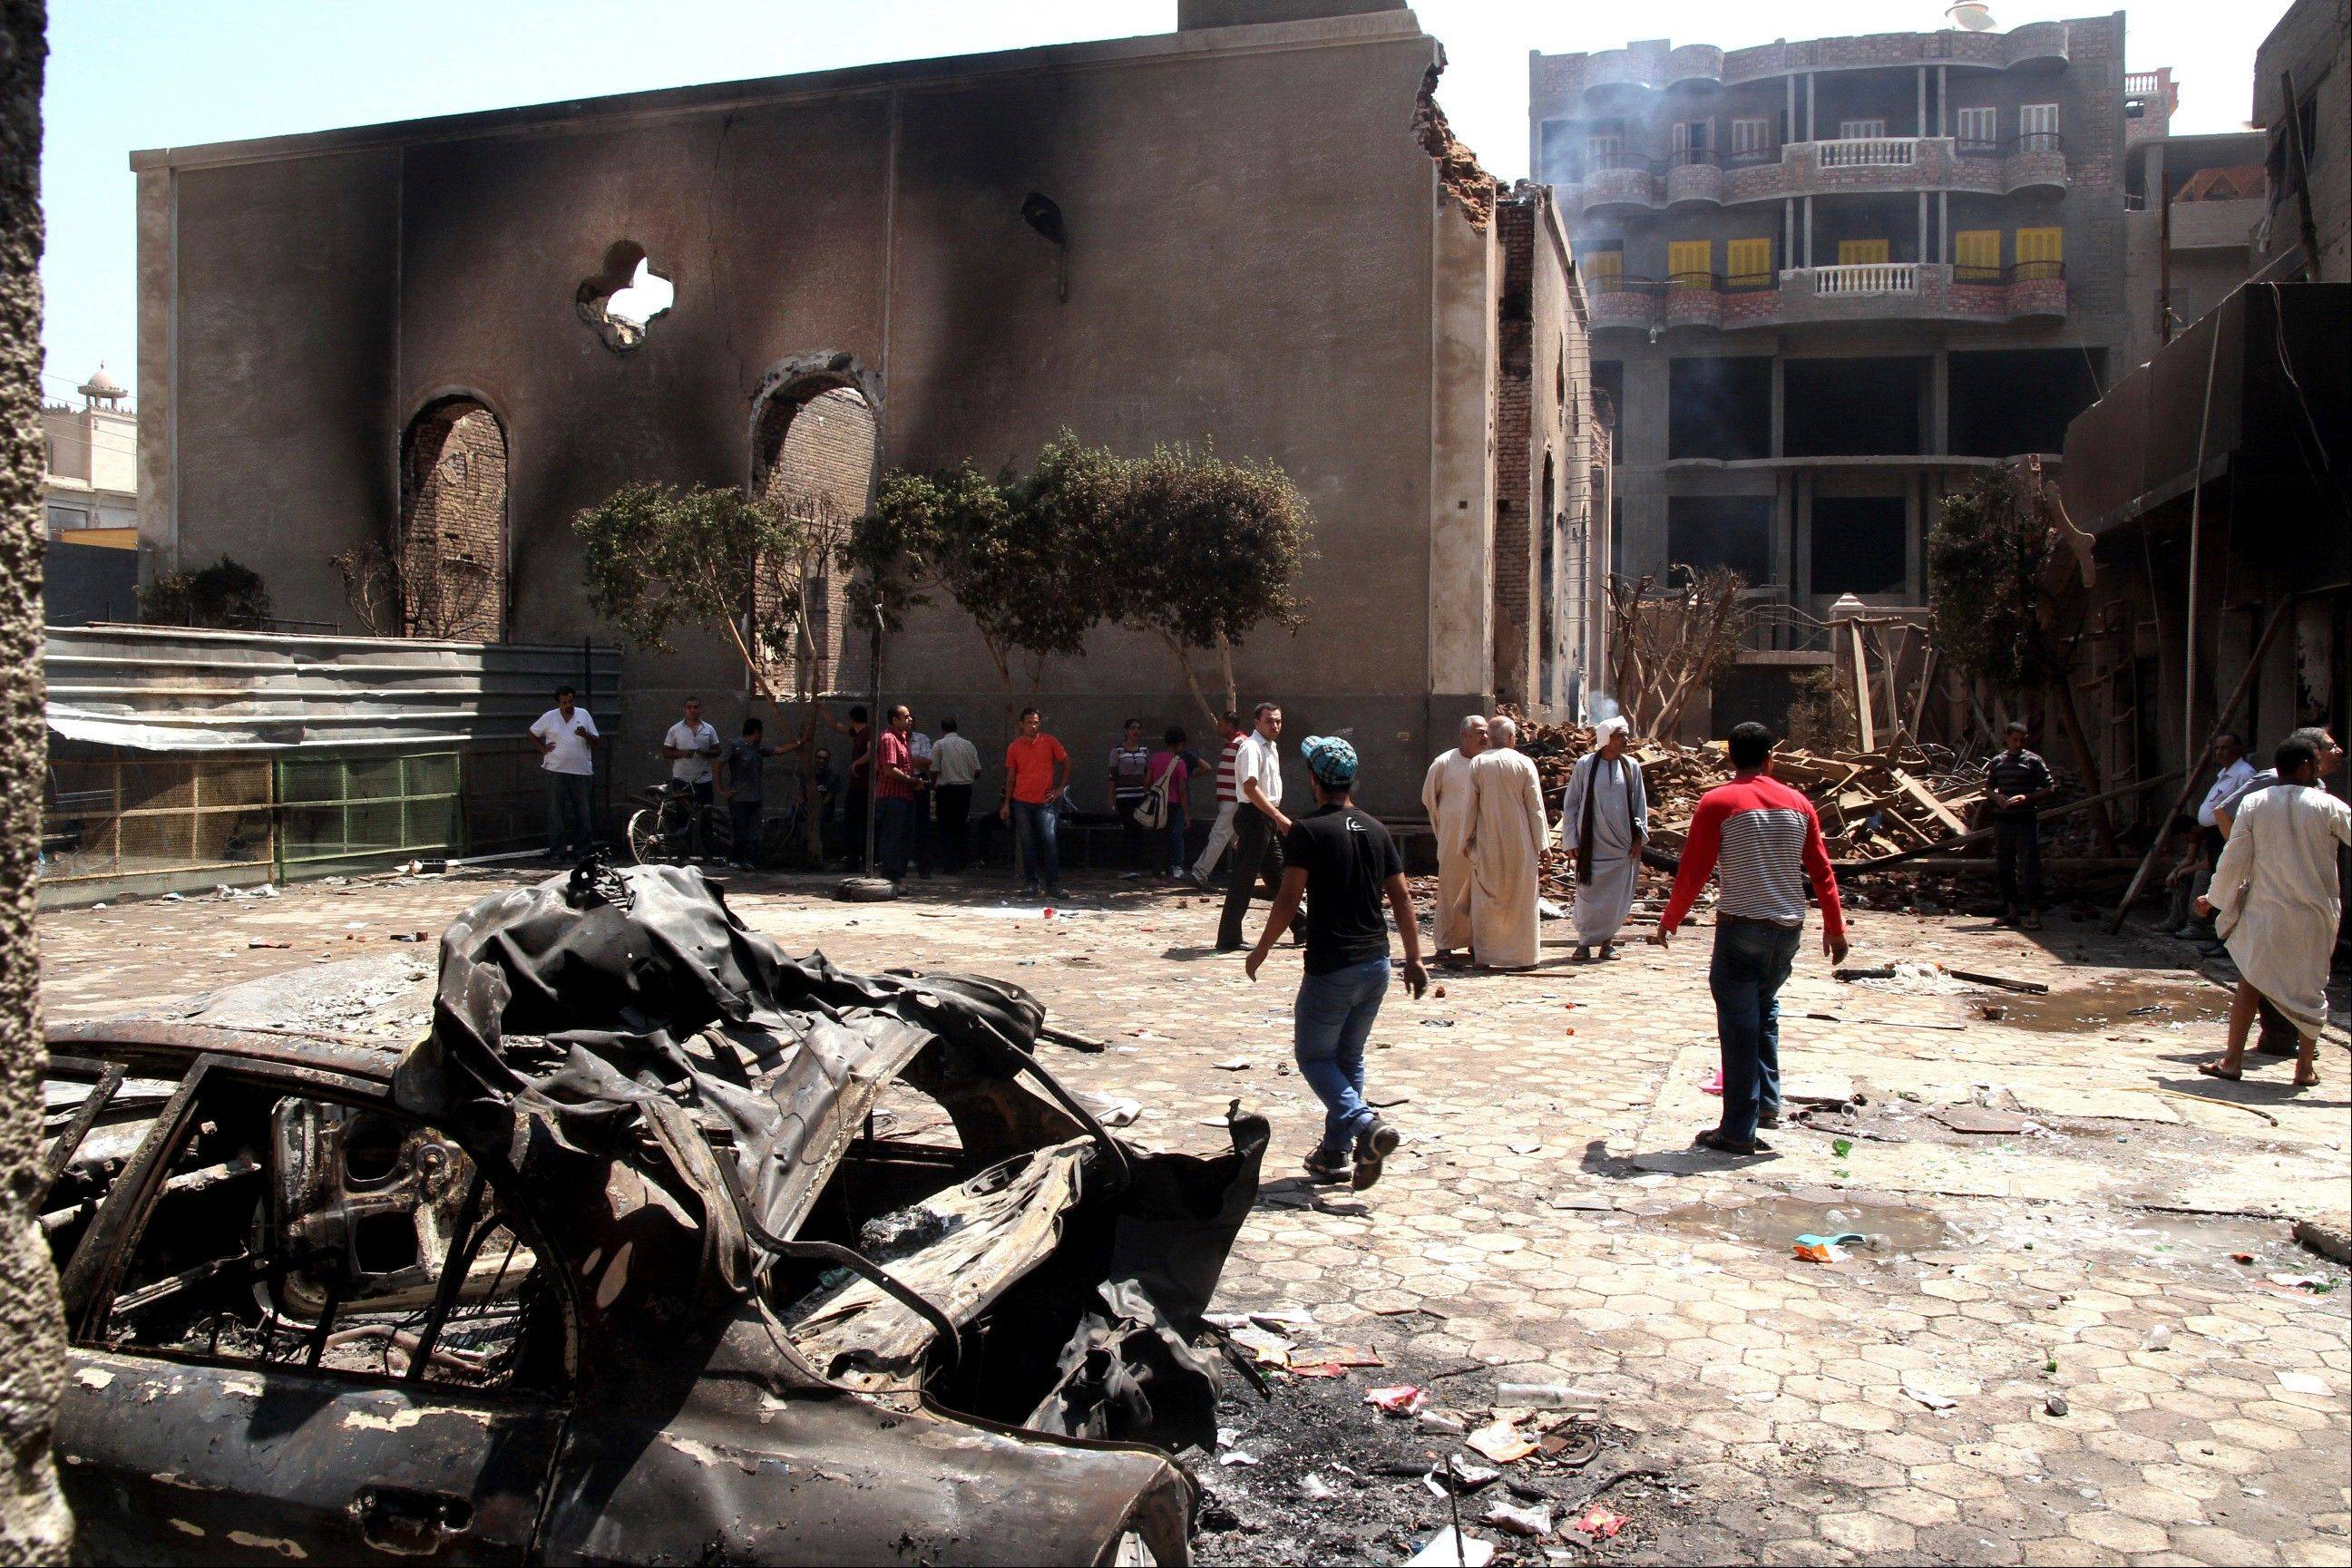 Egyptian gather Saturday in the ruins of the Evangelical Church of Malawi after it was ransacked, looted and burned on Thursday by an angry mob, in Malawi. In the province south of Cairo, protesters attacked two Christian churches, security officials said.